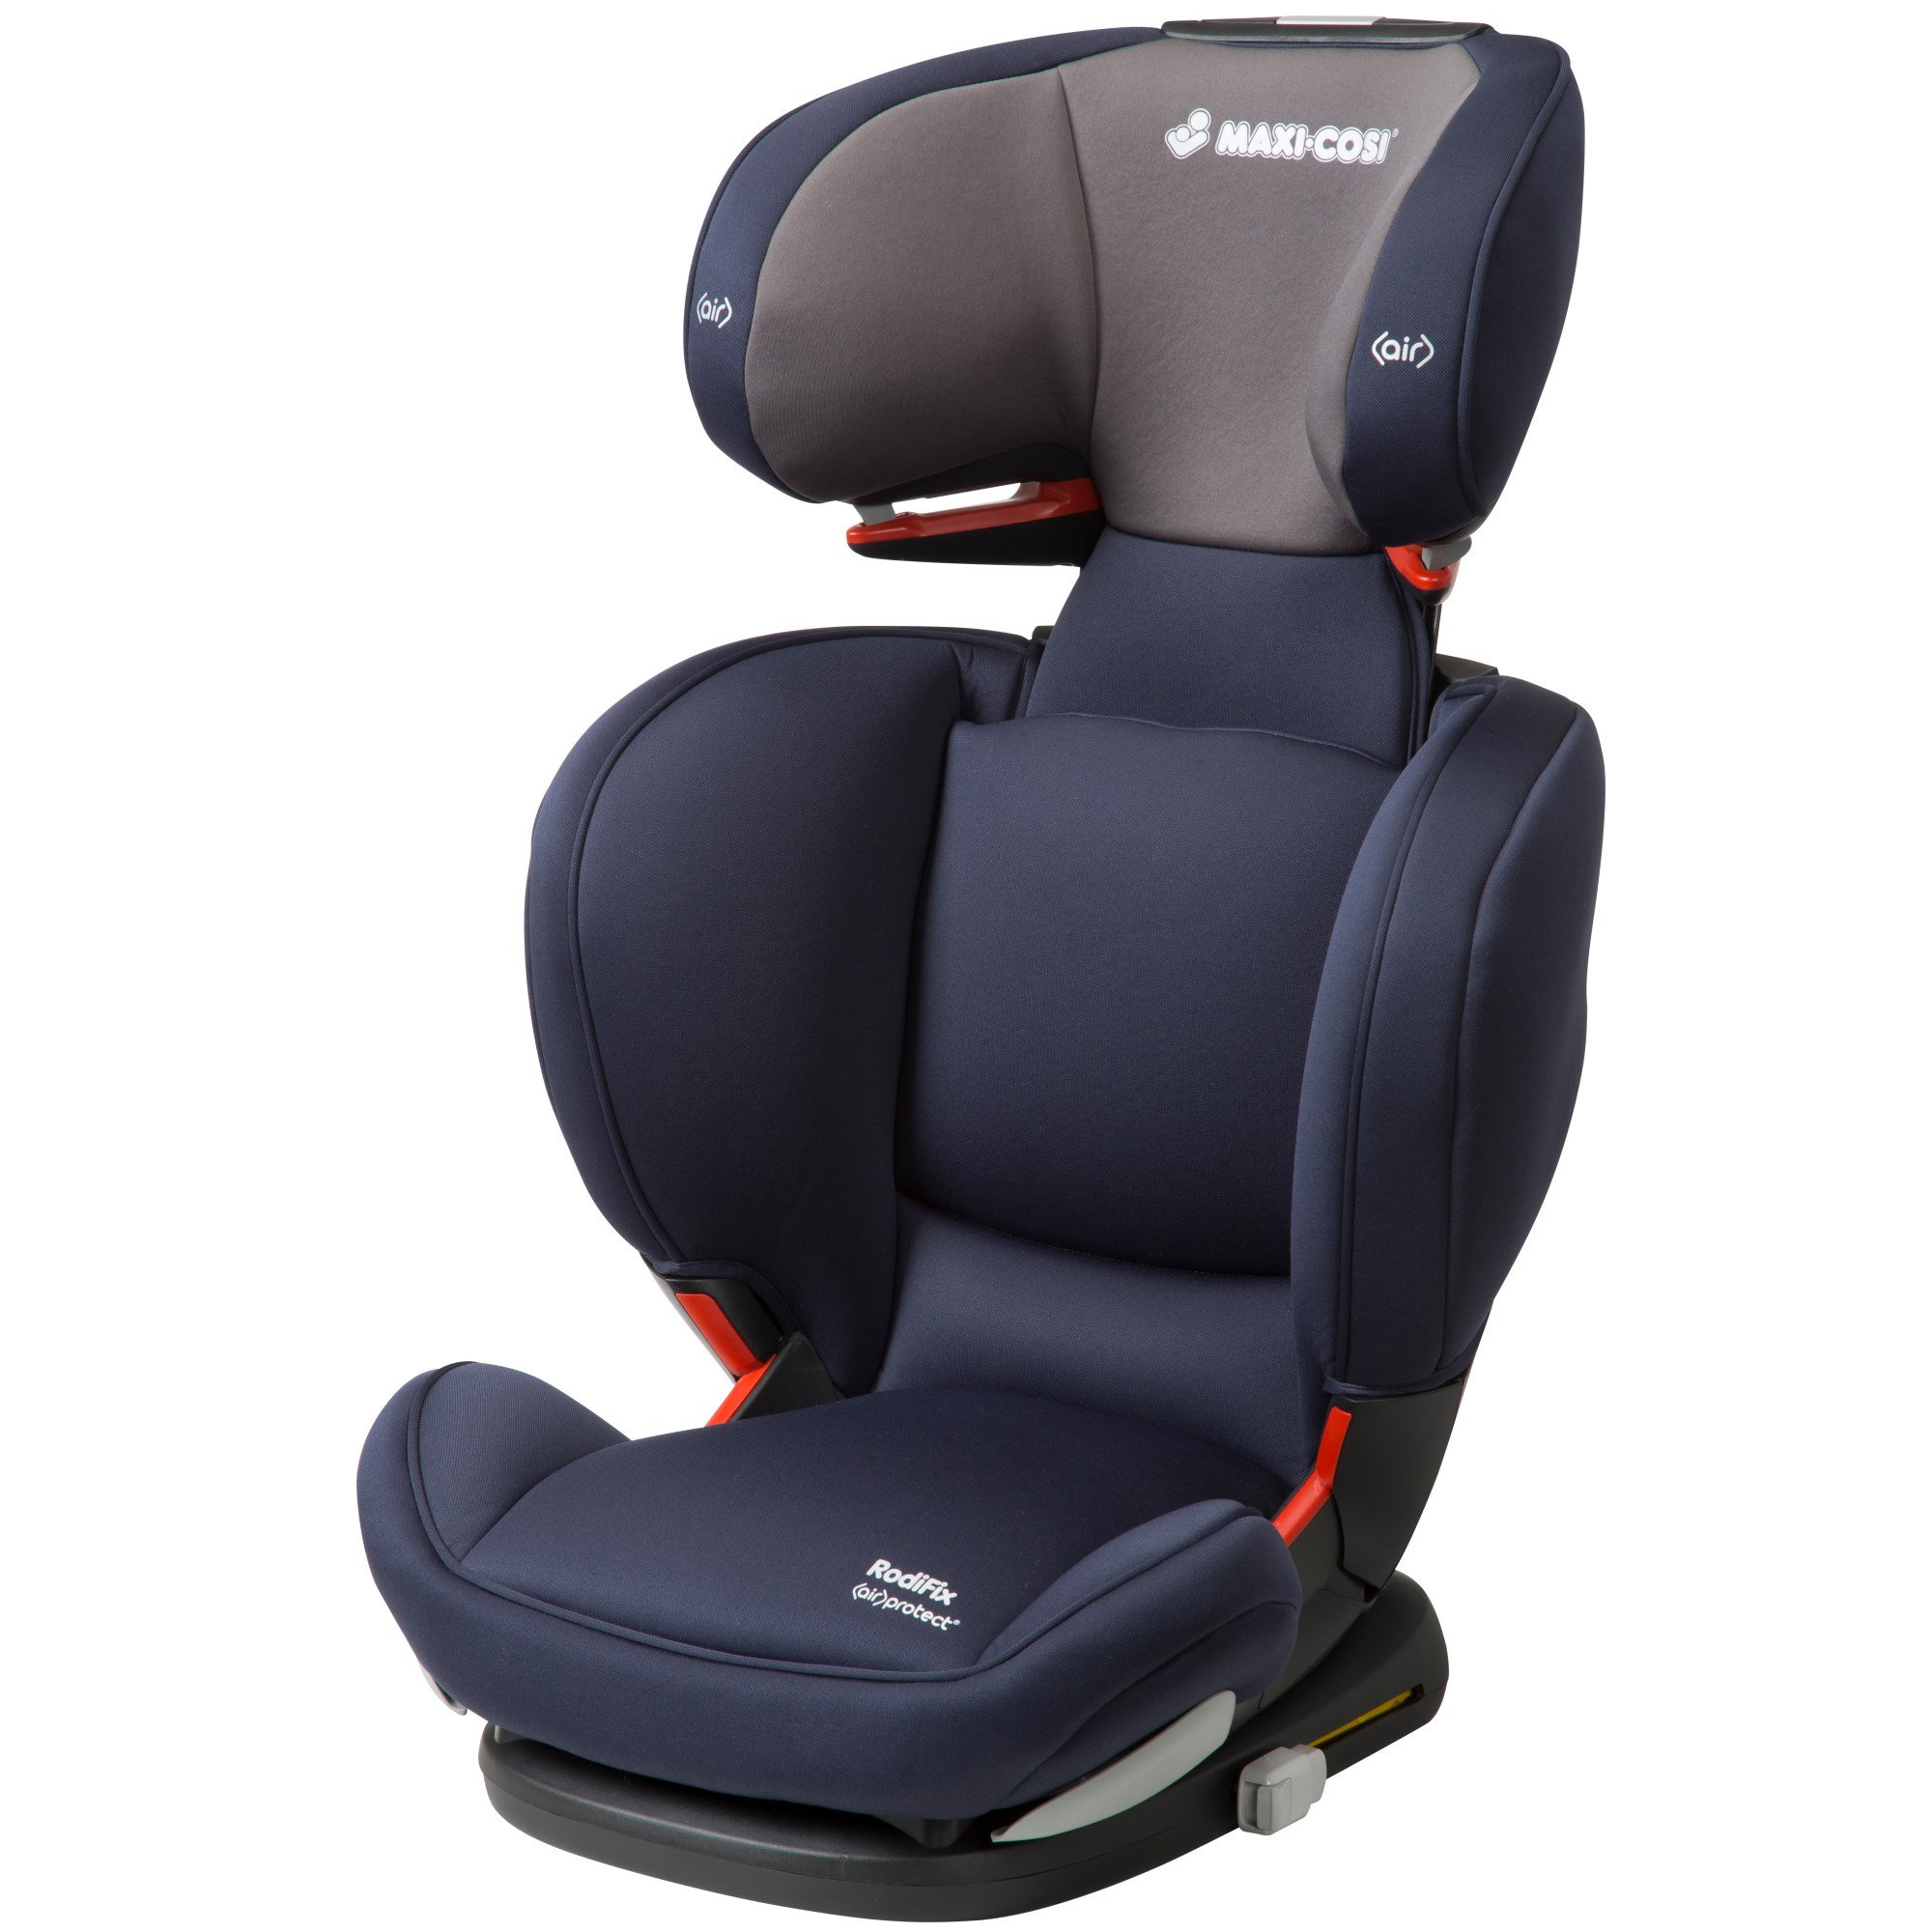 maxi cosi rodifix booster car seat loyal. Black Bedroom Furniture Sets. Home Design Ideas